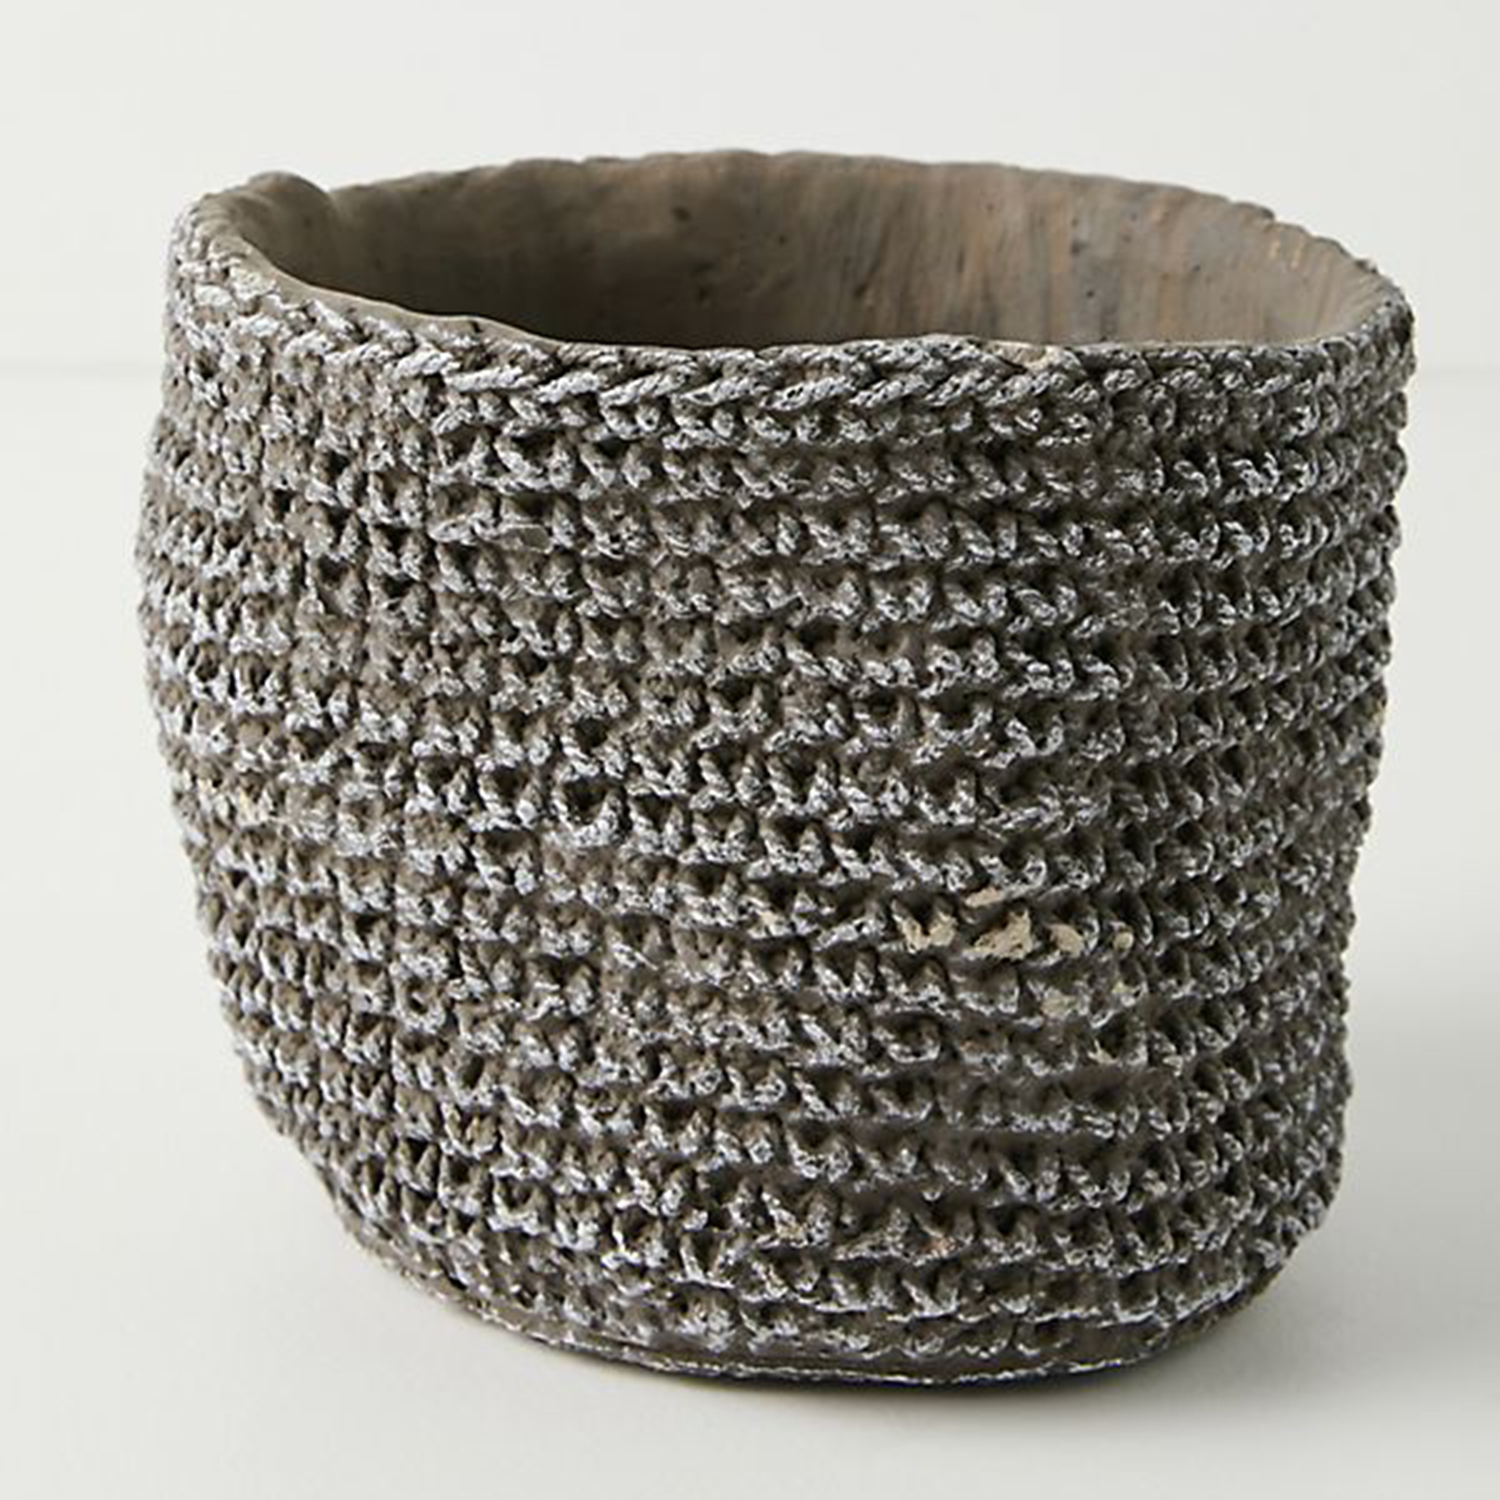 Anthropologie Woven Cement Pot